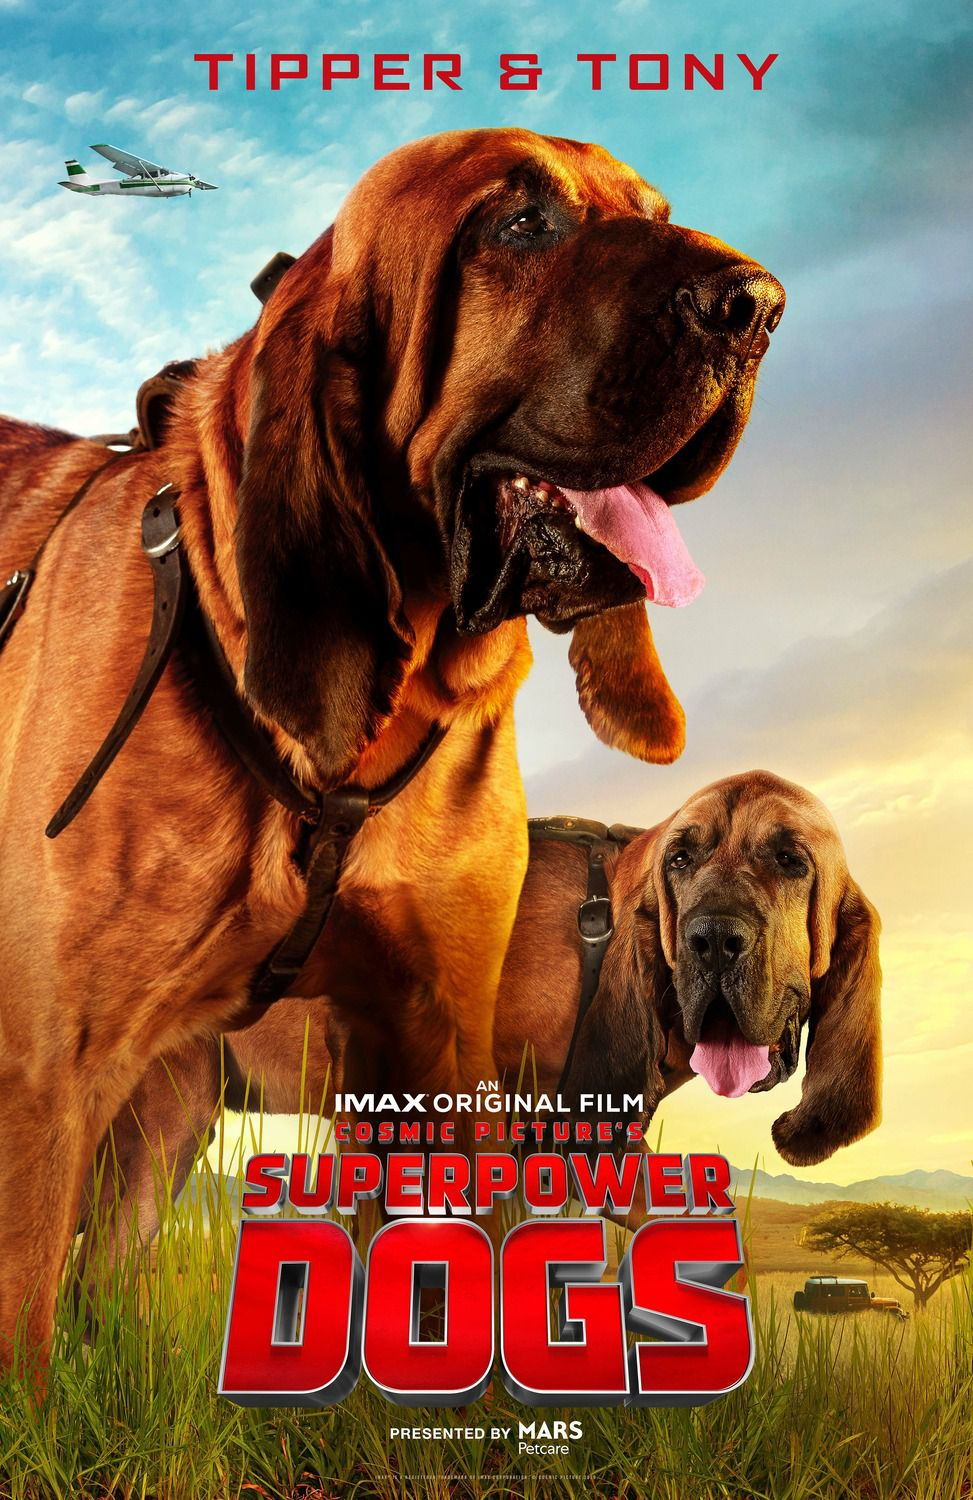 Superpower Dogs: Tipper and Tony